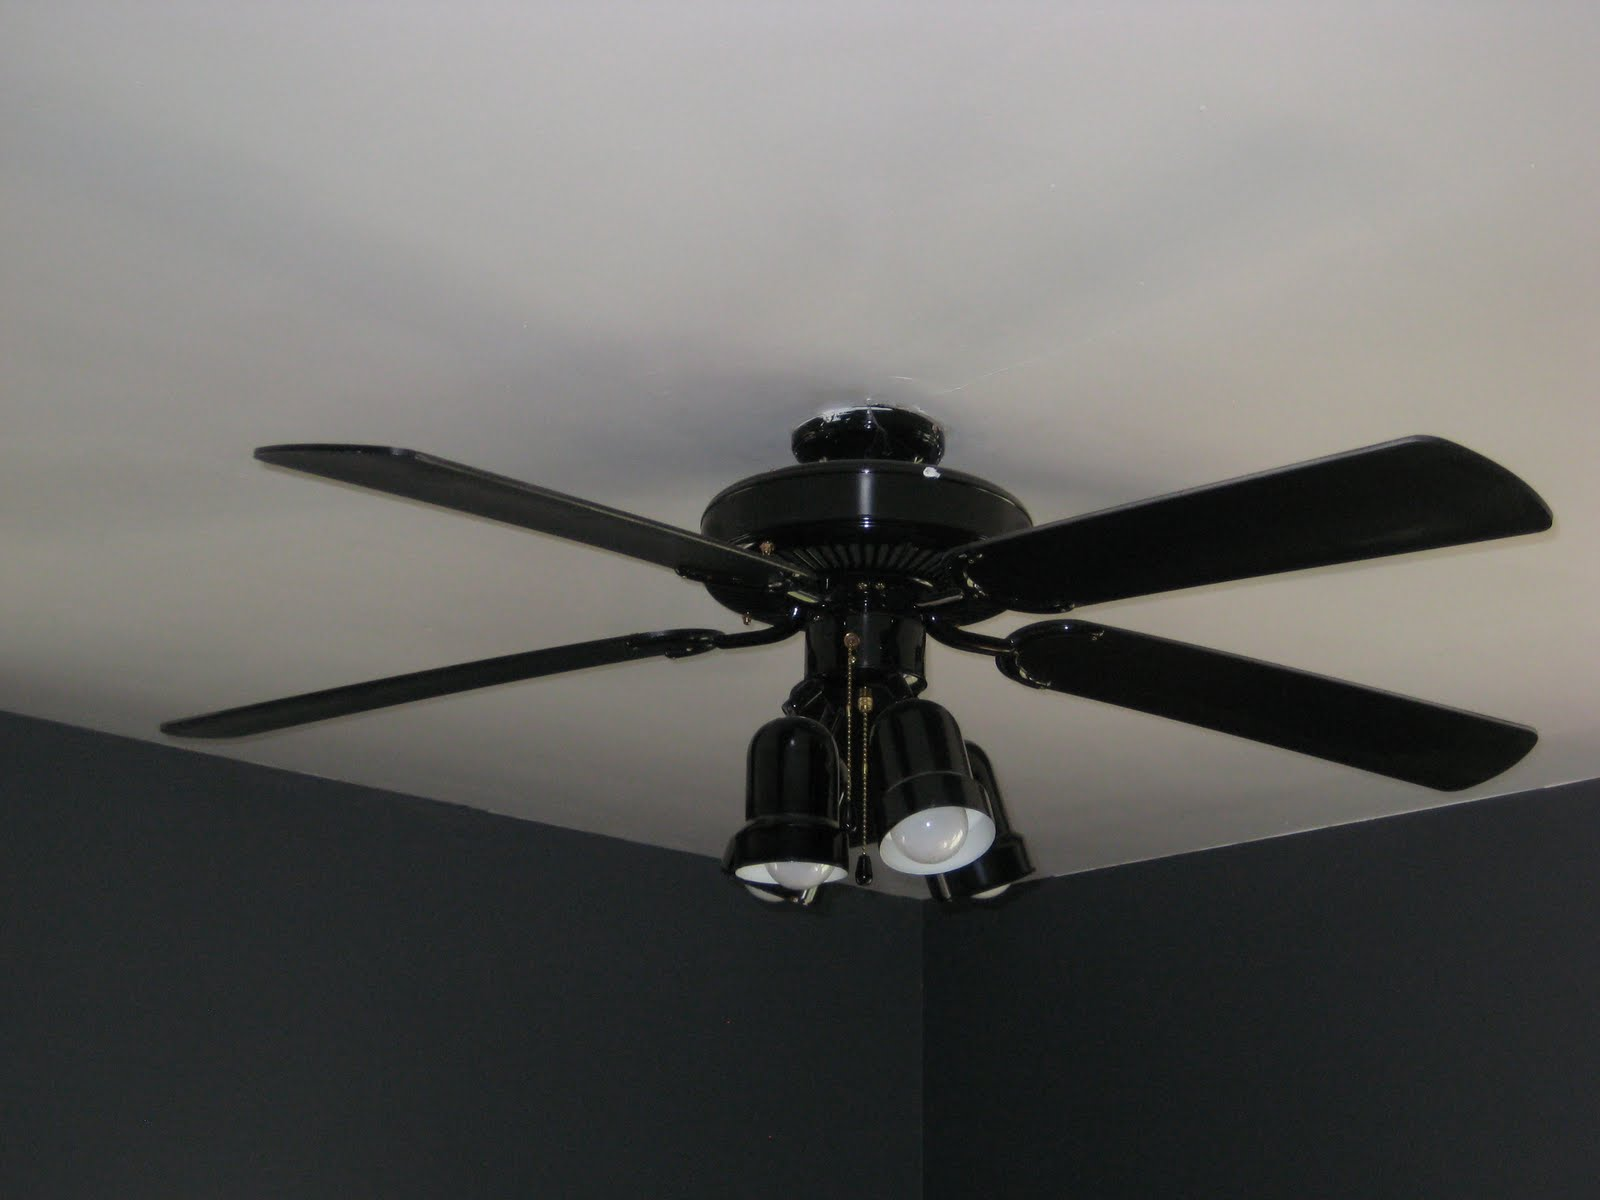 dont laugh okaygo ahead and laugh here are two of the fans currently residing in our home ceiling fans ugly